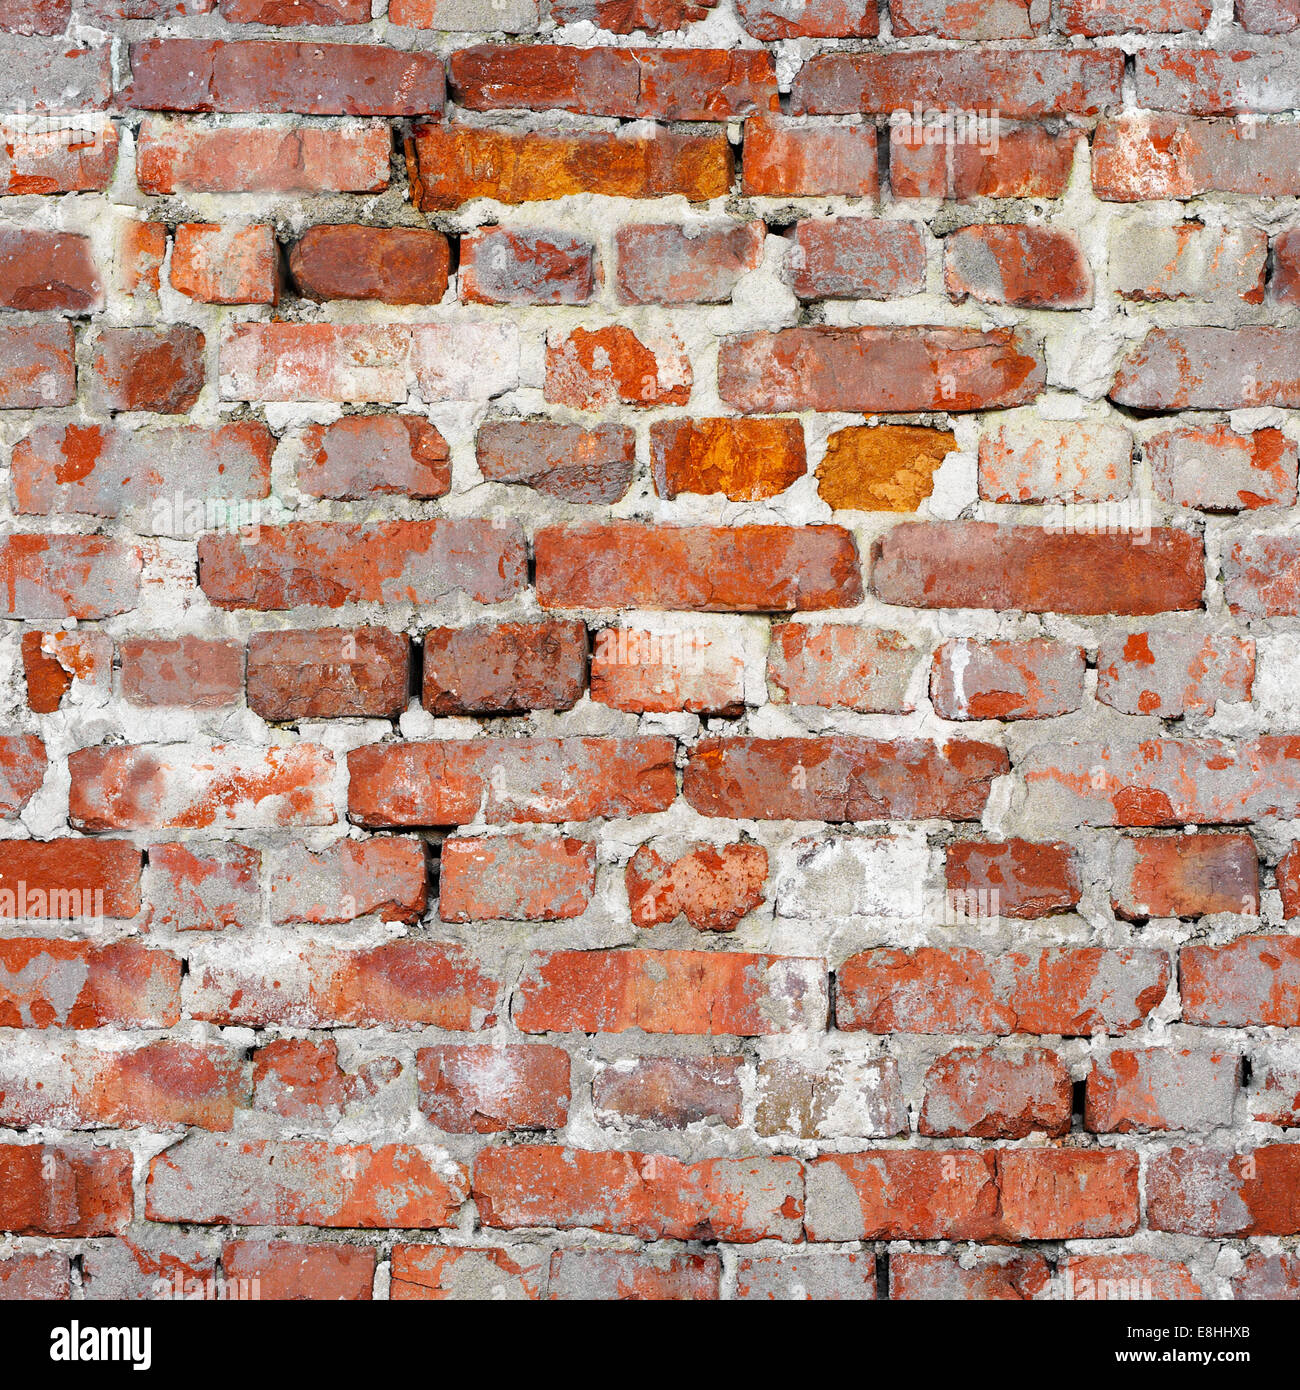 Seamless Texture Of An Old Red Brick Wall Grunge Architecture Pattern